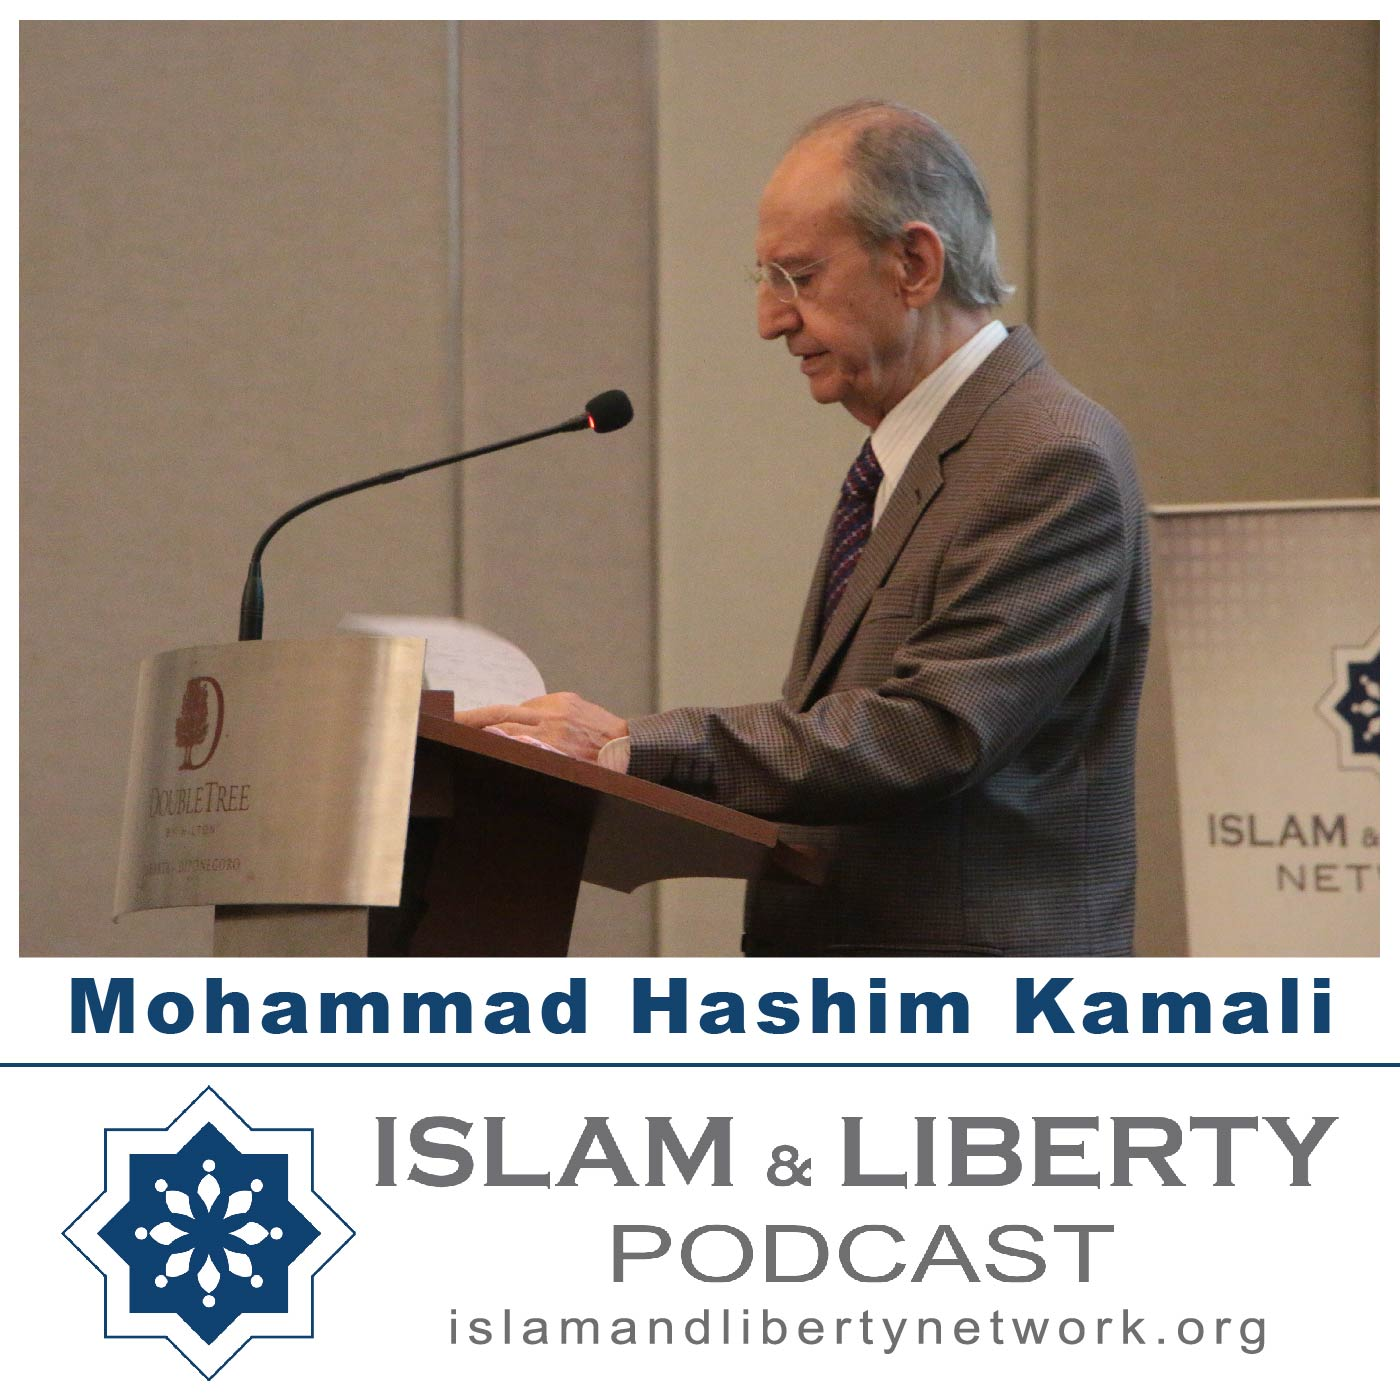 Episode 019 - Mohammad Hashim Kamali, Freedom of Religion and Apostasy: Issues, Responses and Developments